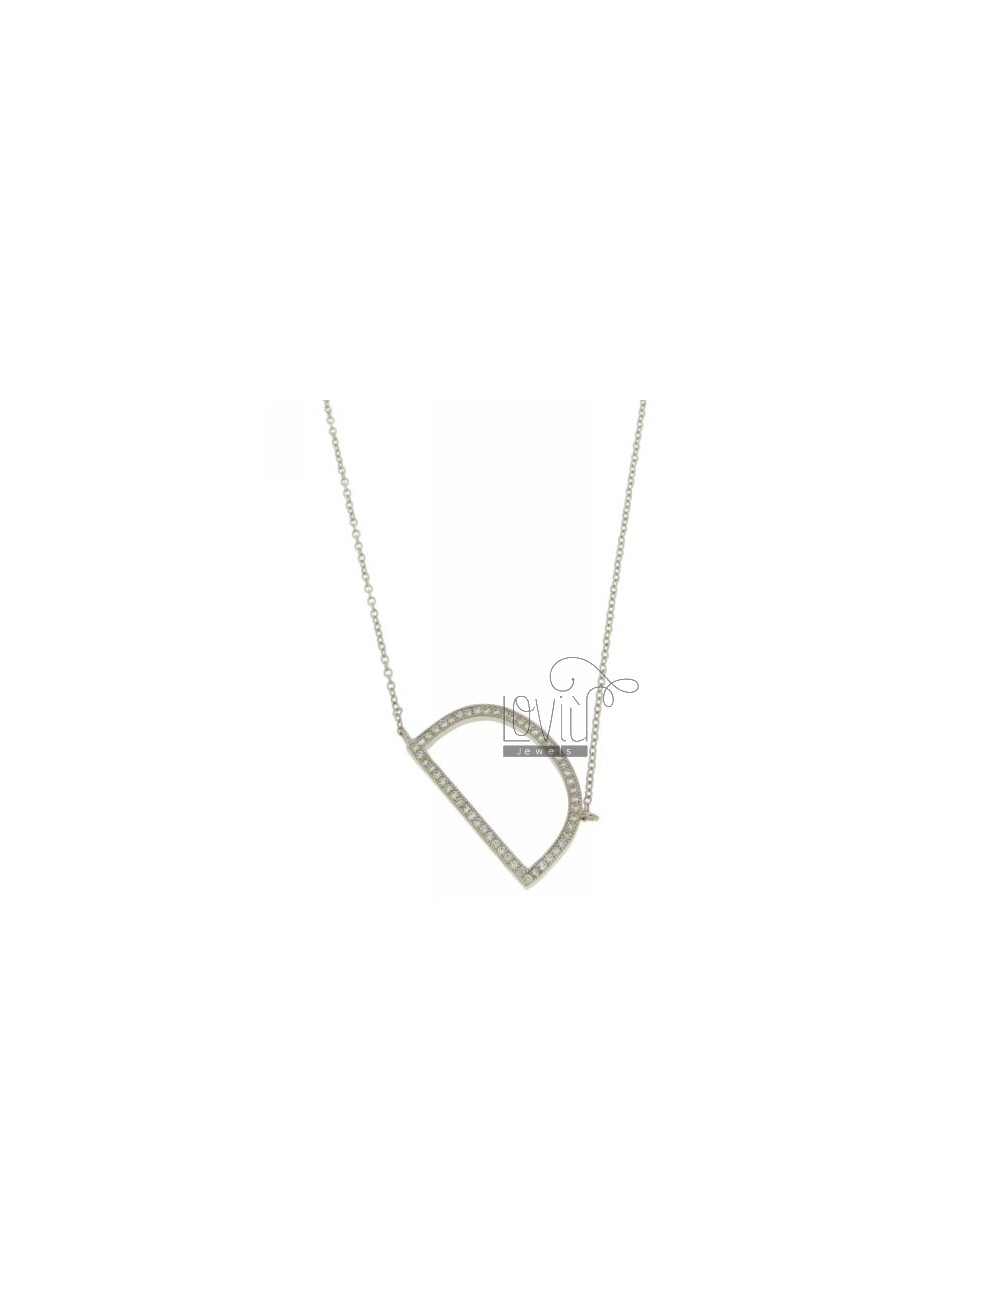 COLLIER BY LETTER D MM 27X16 SILVER TITLE AND ZIRCONIA CM 925 ‰ 45